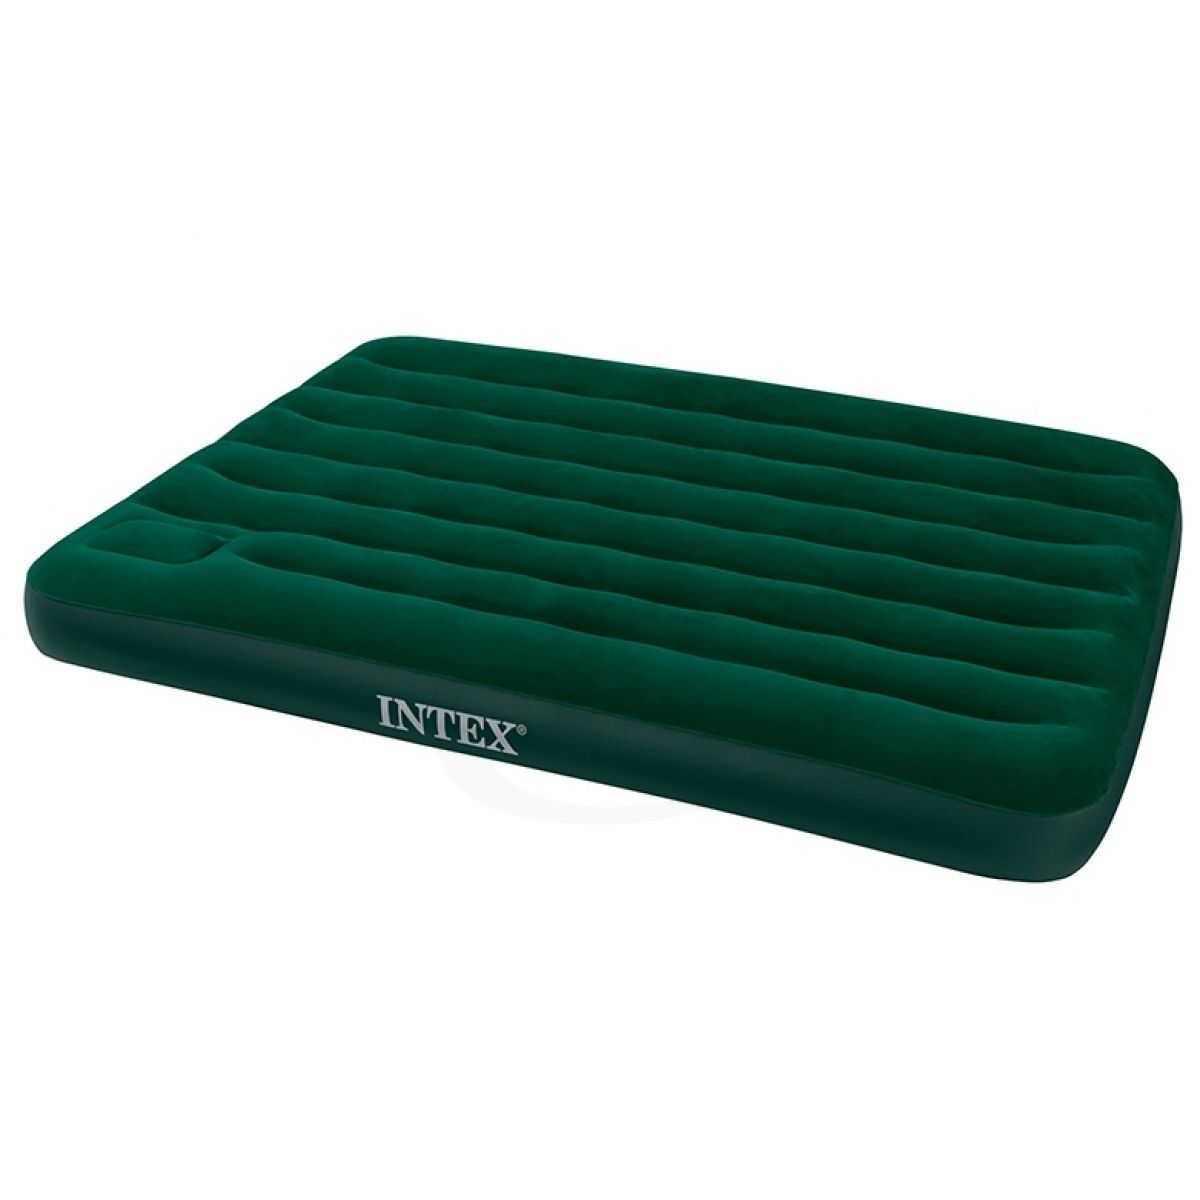 Intex Full Air Bed Intex Airbed 54 X 75 X 8 ¾ Downy Full Size With Built In Foot Pump